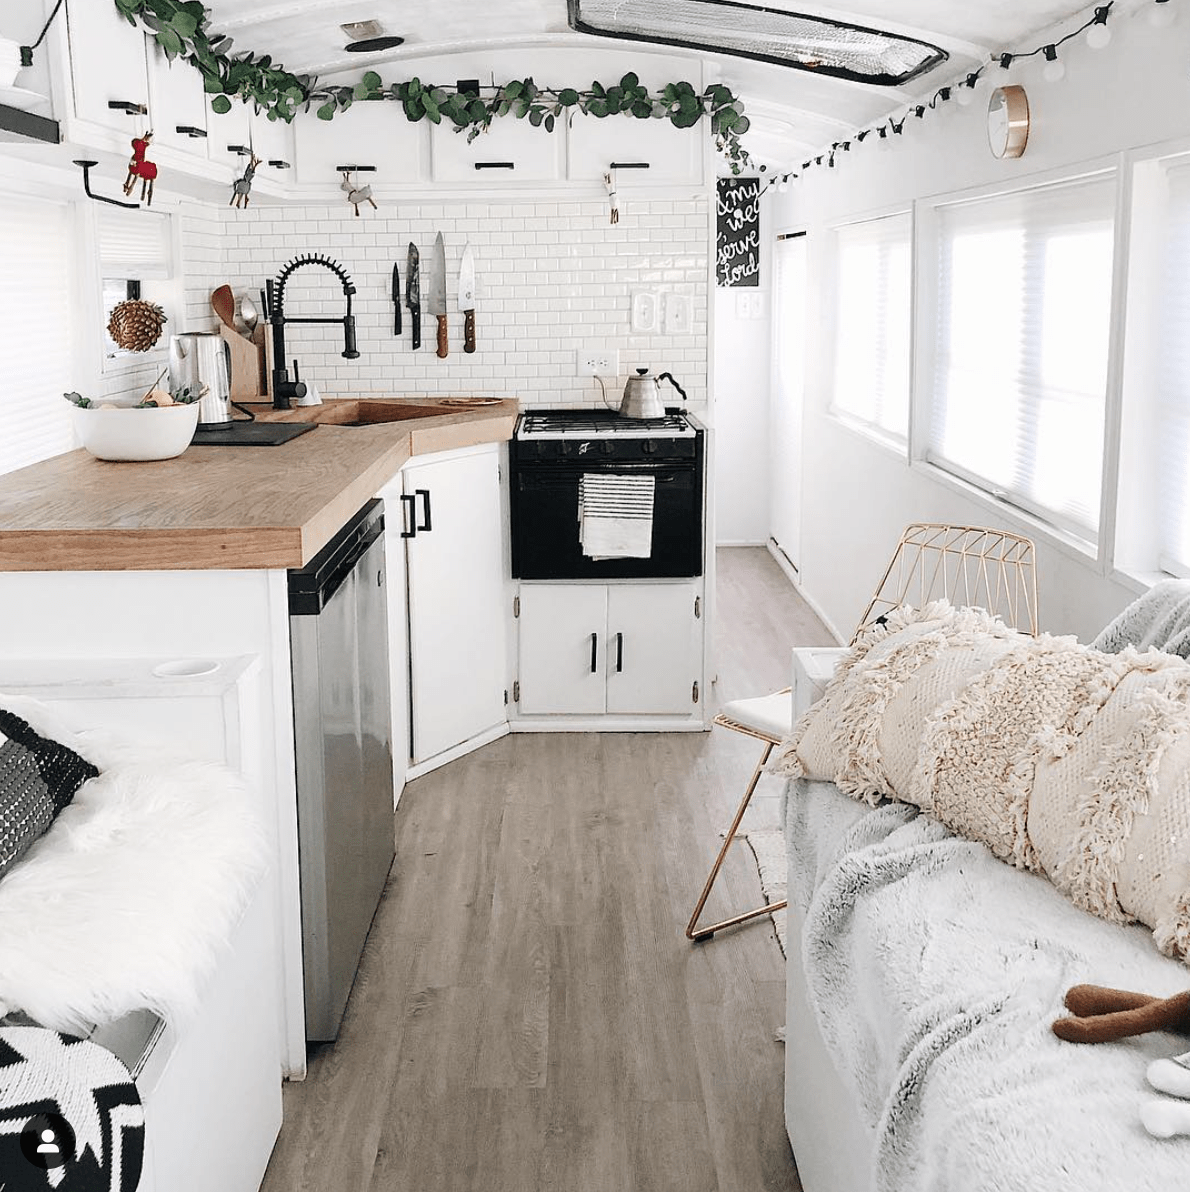 Scandinavian Style Is The Perfect Style For The Bus Interiors A Life Living In In 2020 Bus Interior Caravan Interior Home